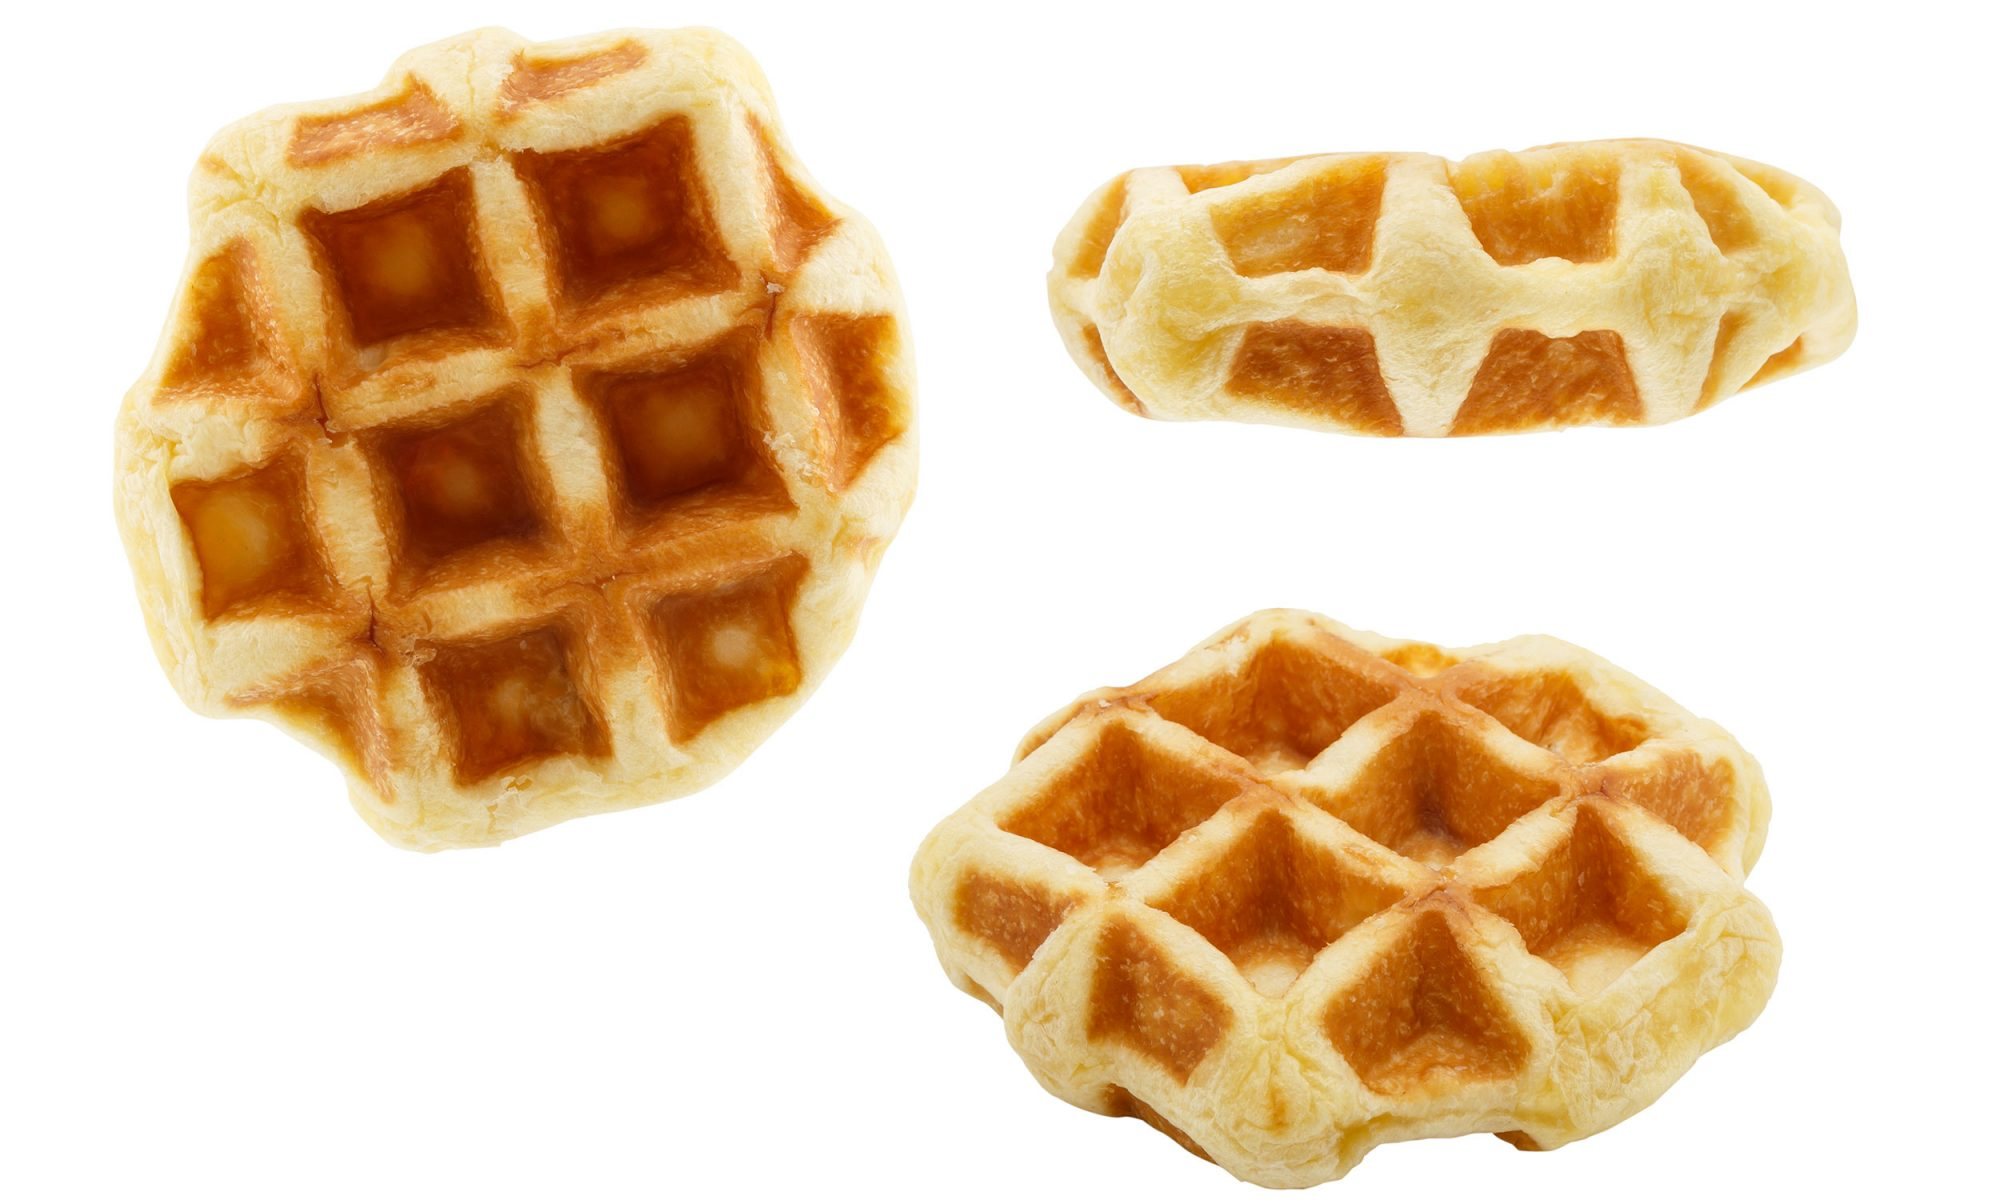 For a Good Time, Waffle Your Biscuits